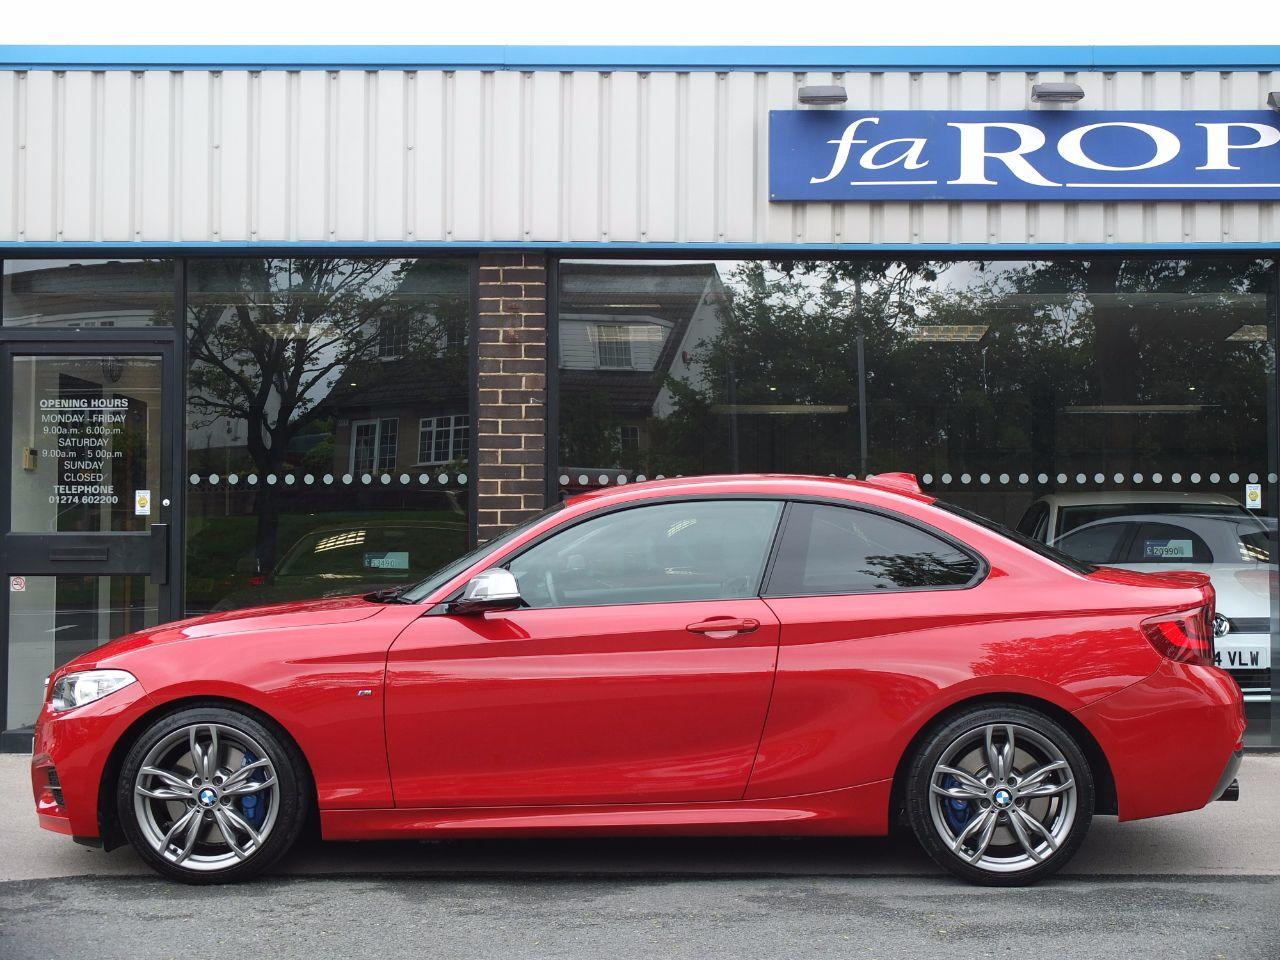 BMW 2 Series 3.0 M235i Step Auto ++++Spec Coupe Petrol Melbourne Red Metallic